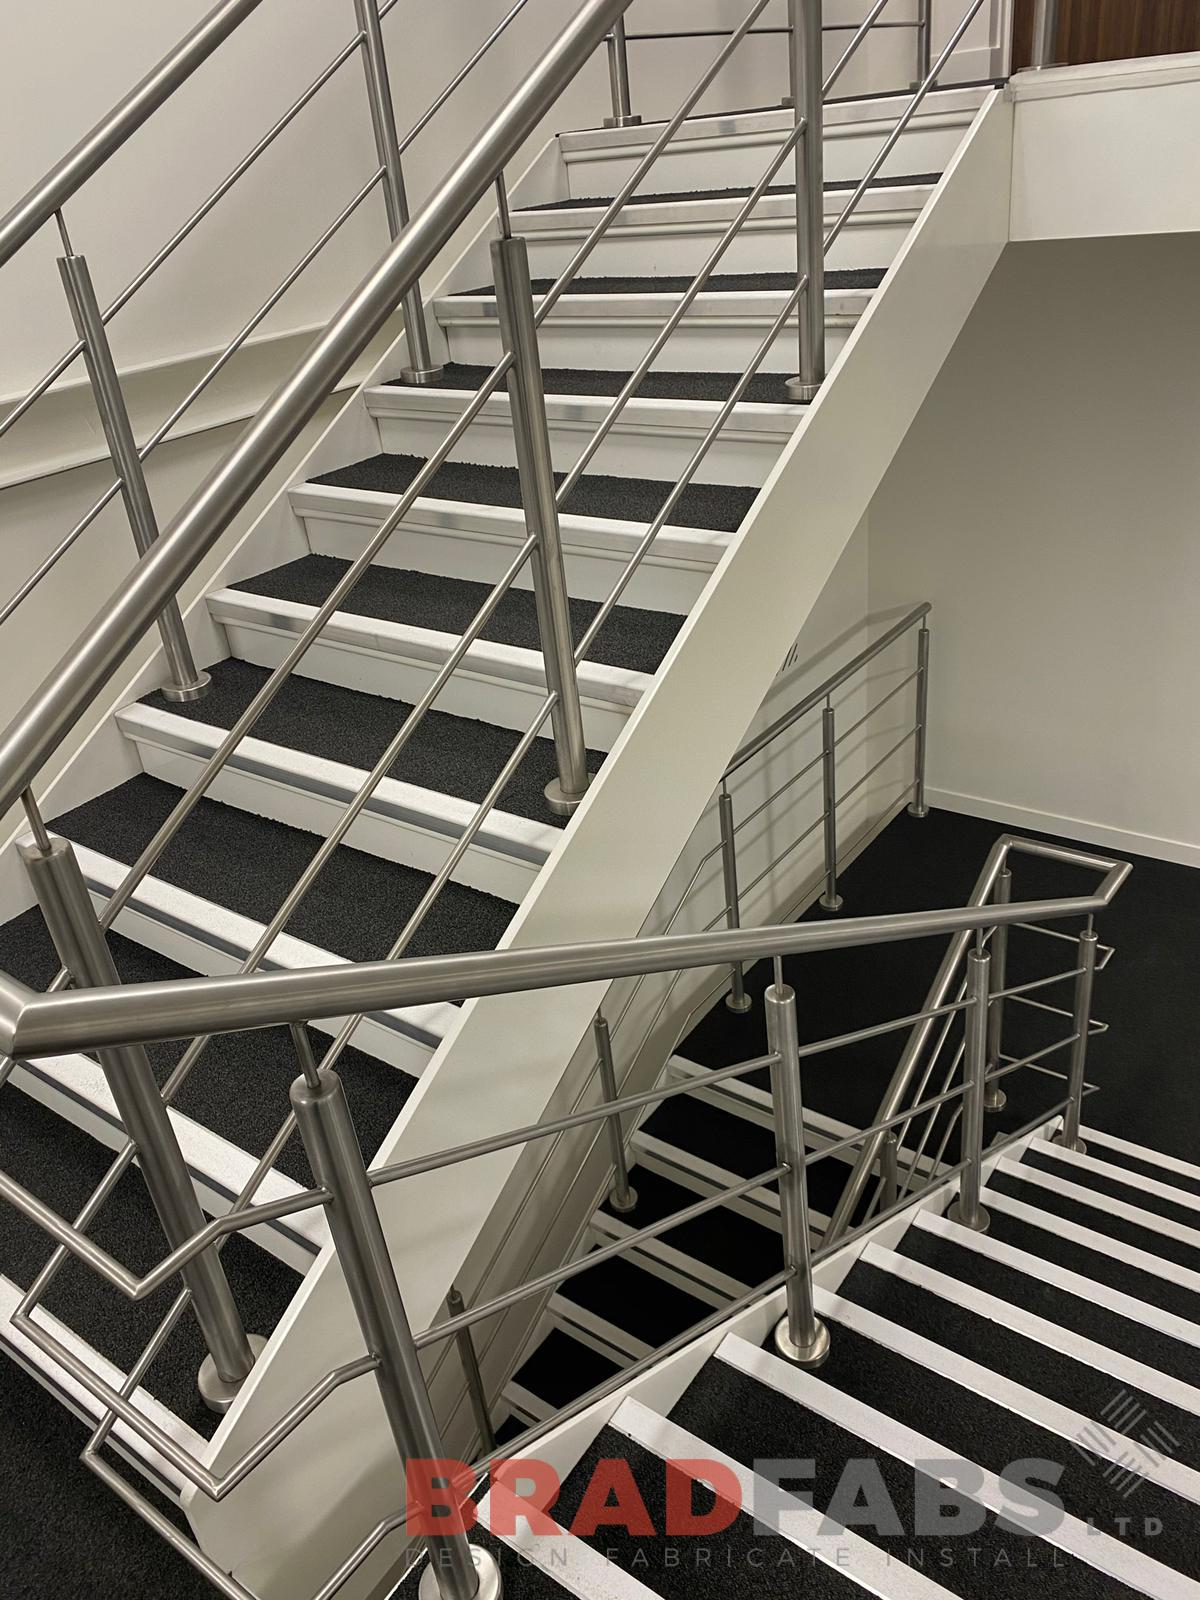 Bradfabs, straight staircase, steel staircase, top and mid rail balustrade, bespoke staircase, escape staircase, cat ladder